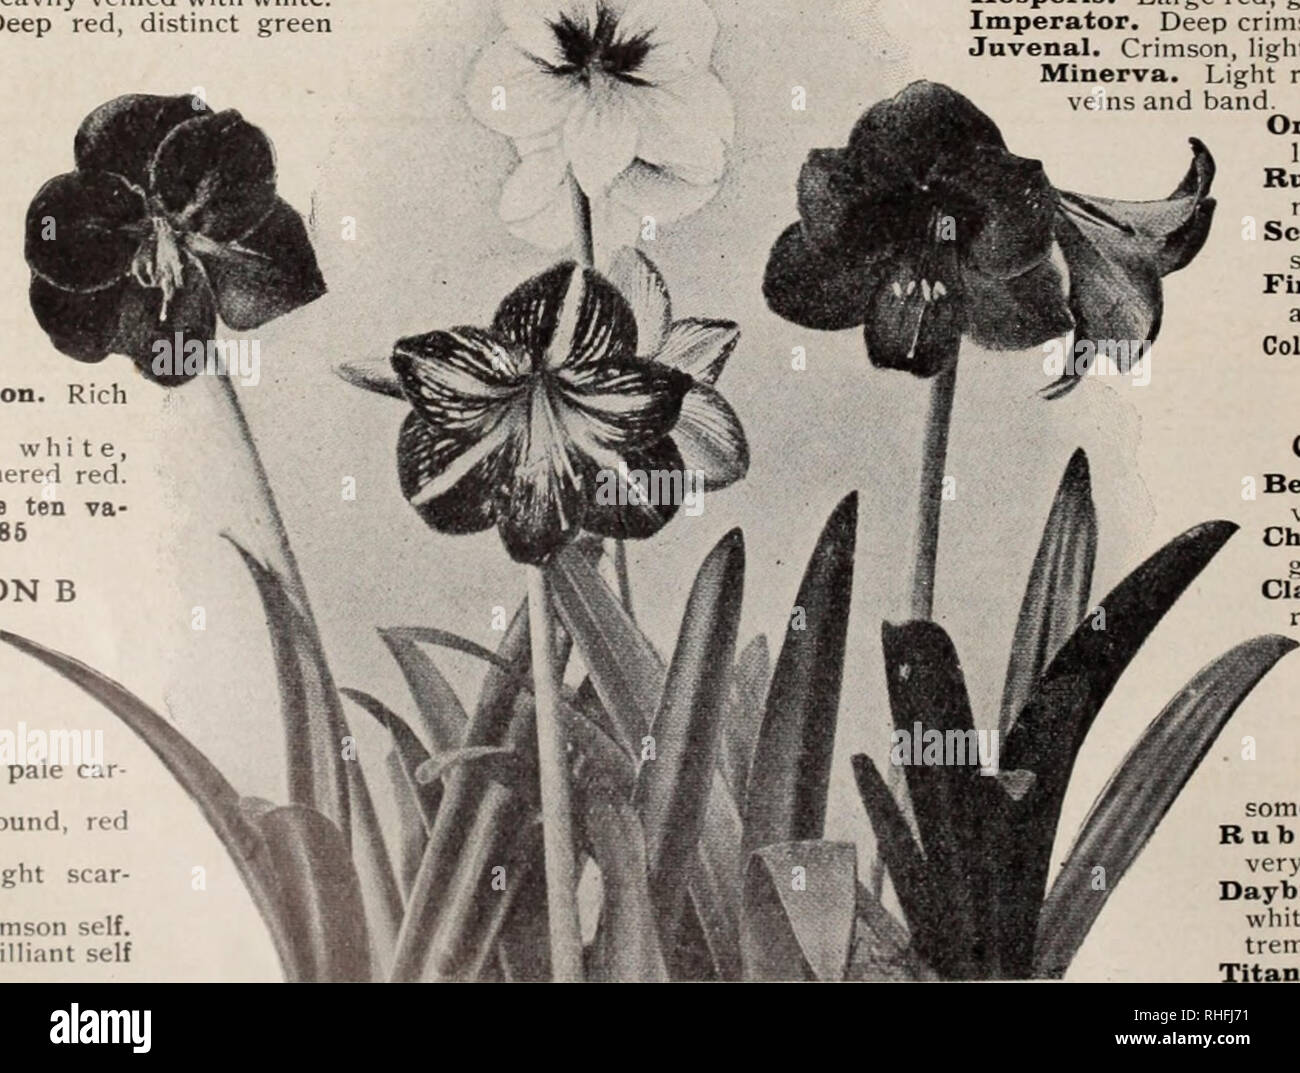 . Boddington's quality bulbs, seeds and plants / Arthur T. Boddington.. Nursery Catalogue. 24 Arthiir T.Boddington. 342 West 14th St.. New Vork City GOLD MEDAL AMARYLLIS (Kers) The most gorgeous and beautiful of all bulbous plants. The original speciea, Amaryllis aulicum, A. equeslre, A. psittacinum A. RegincE, etc., were first introduced to g.irdens mure than a century ago. Very many of these species were cultivated and flowered for the first time in Europe in the gardens of Liverpool merchants, whose ships brought them from tlie West Indian Islands and Brazil. The first recorded hybrid was r - Stock Image